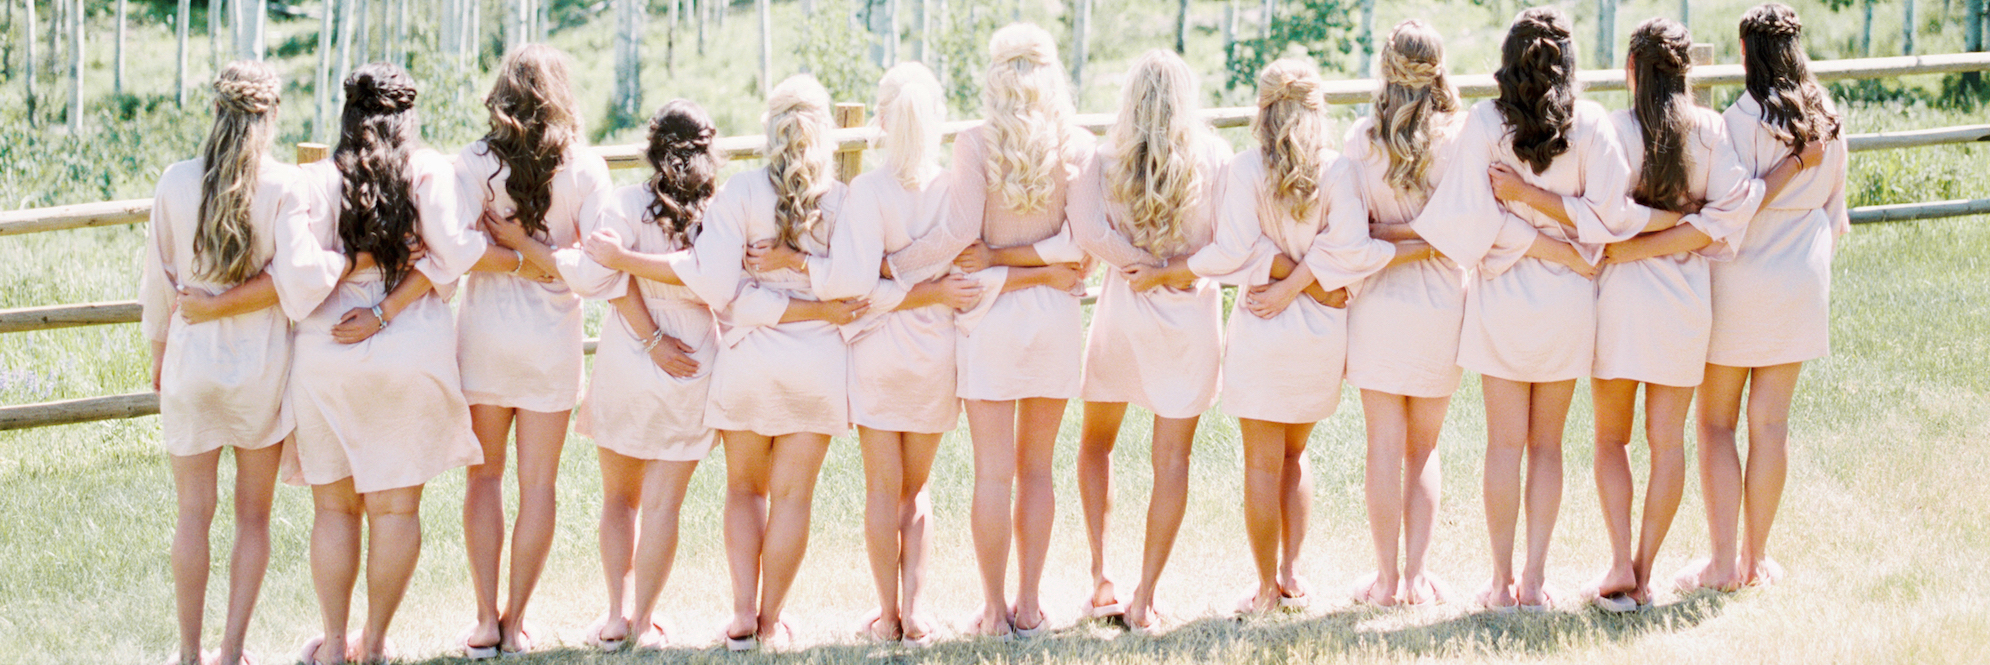 Wedding Hair Stylists in Miami and Fort Lauderdale